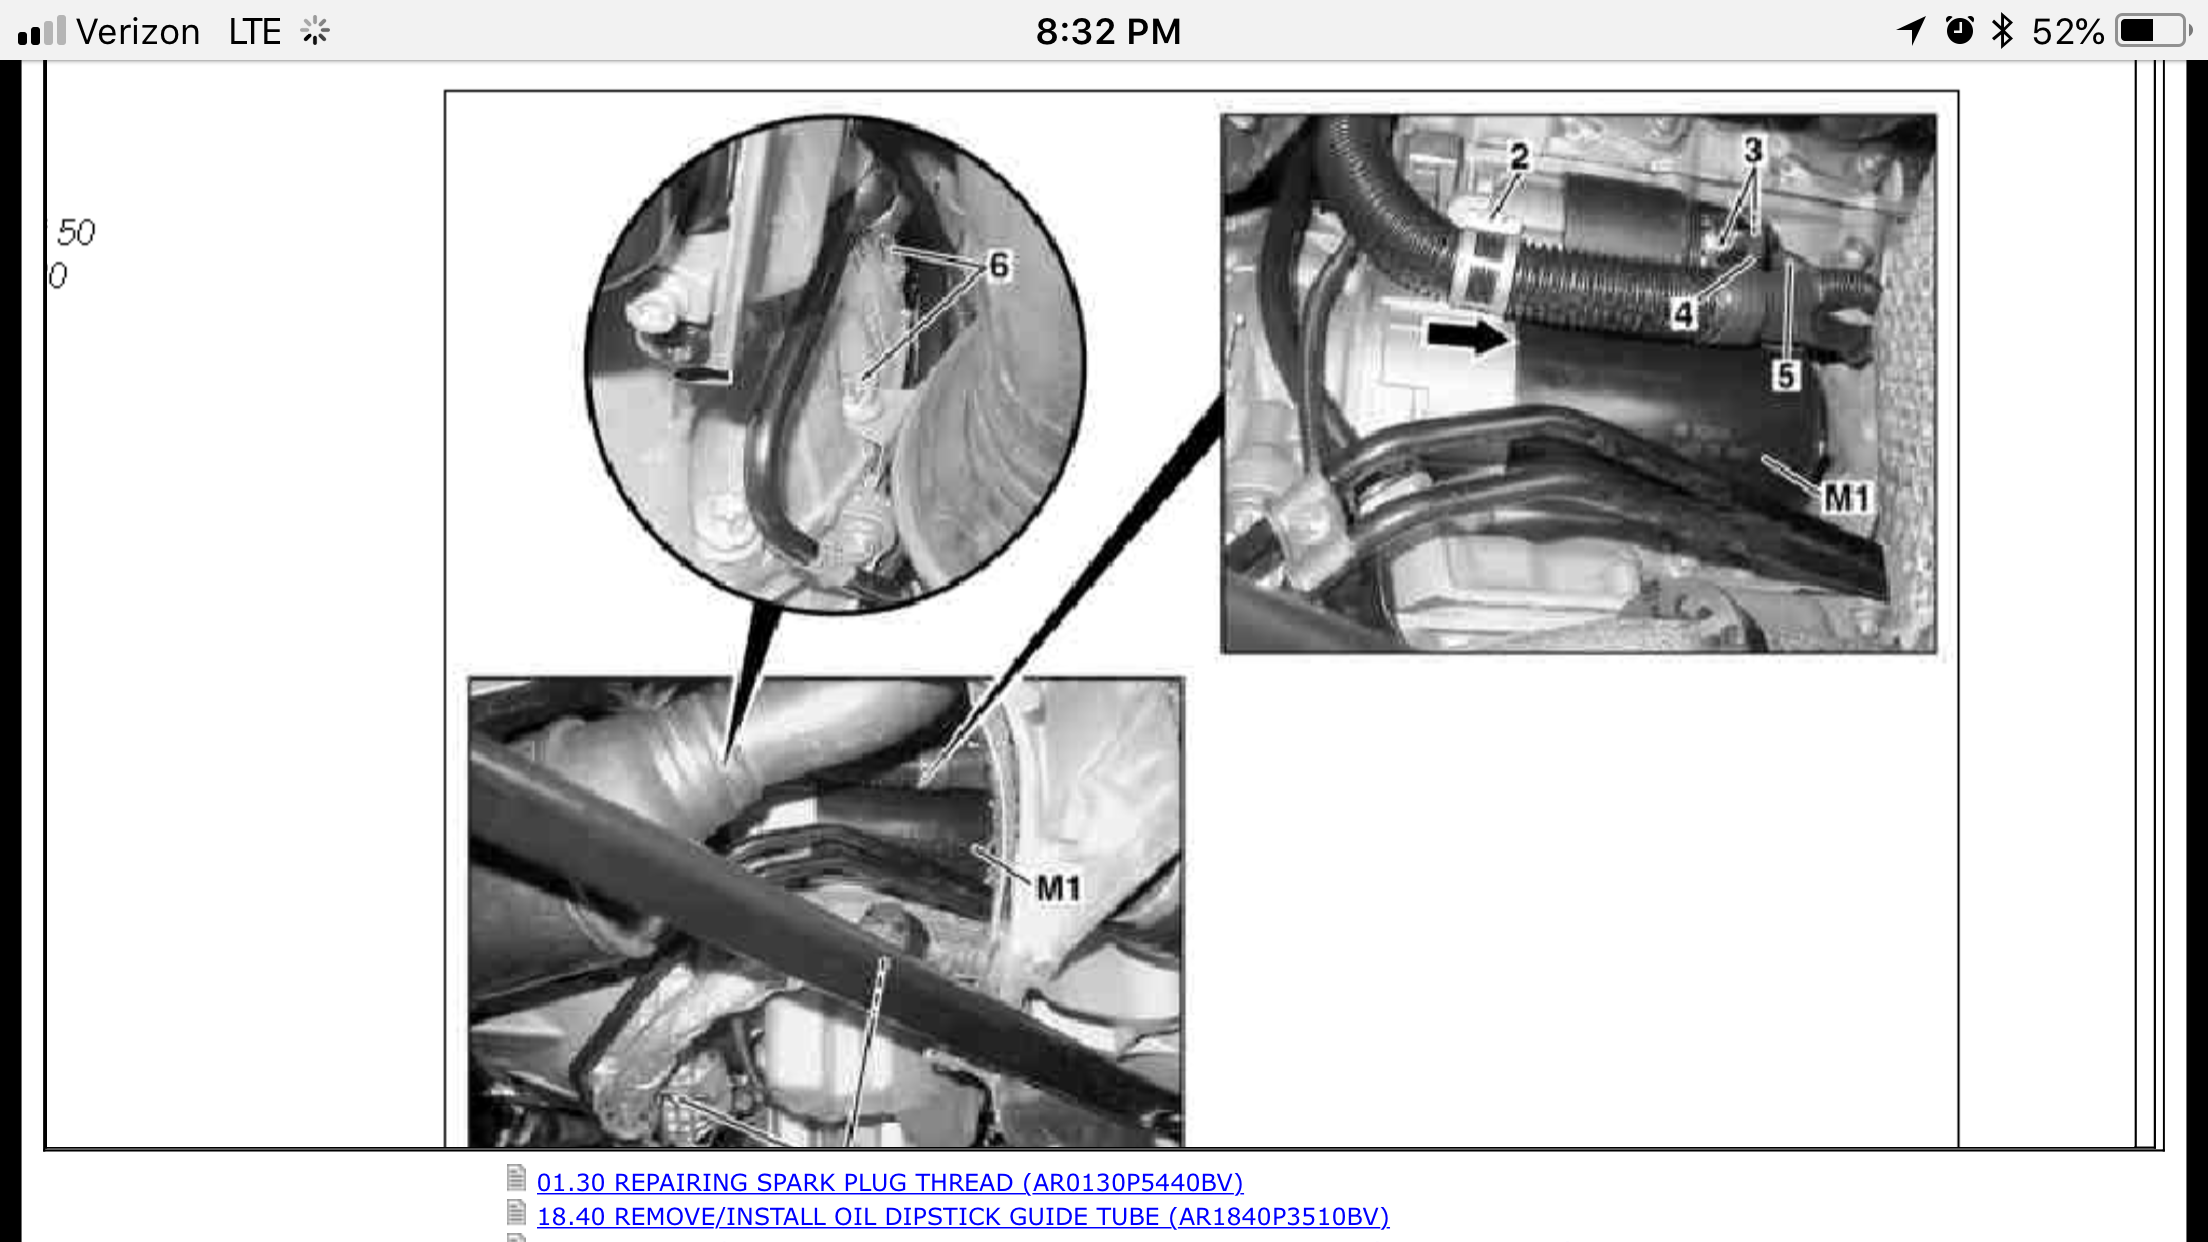 I have a 2004 SL55  I replaced the starter battery and the